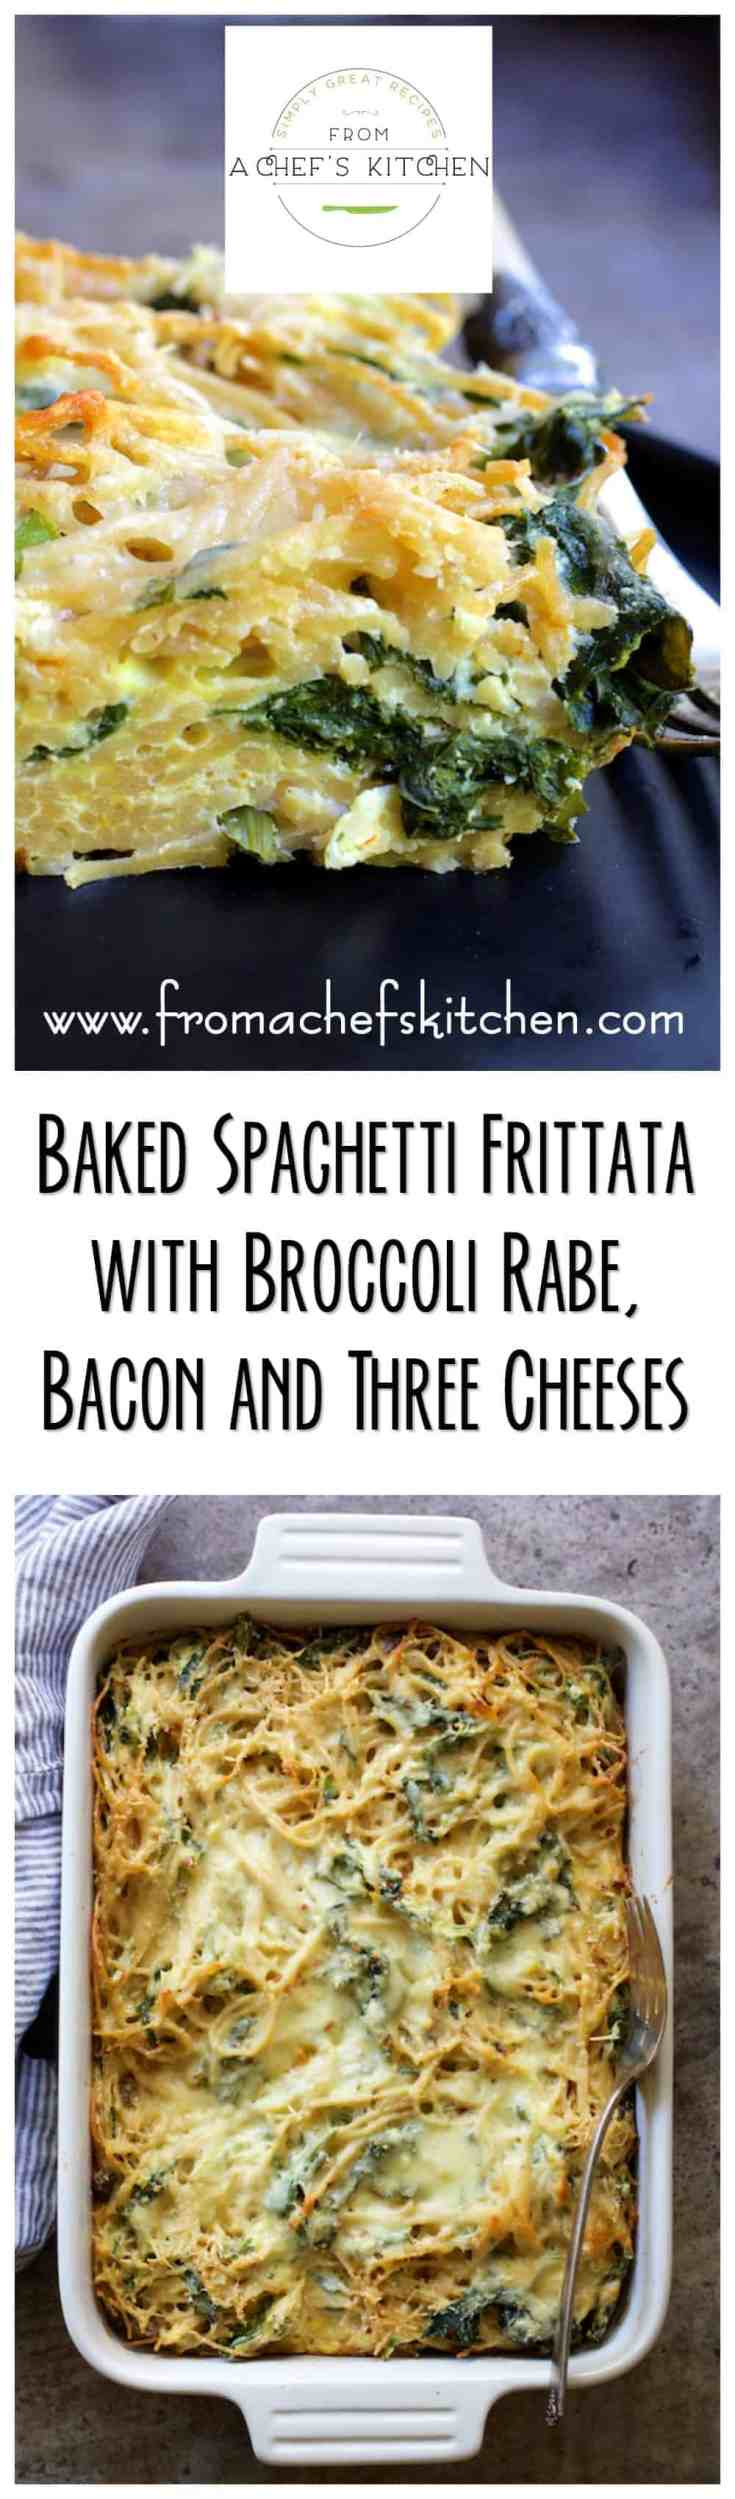 Baked Spaghetti Frittata with Broccoli Rabe, Bacon and Three Cheeses is a delicious combination of flavor and texture! Perfect for brunch, lunch or supper. #spaghetti #spaghettifrittata #breakfast #brunch #brunchrecipes